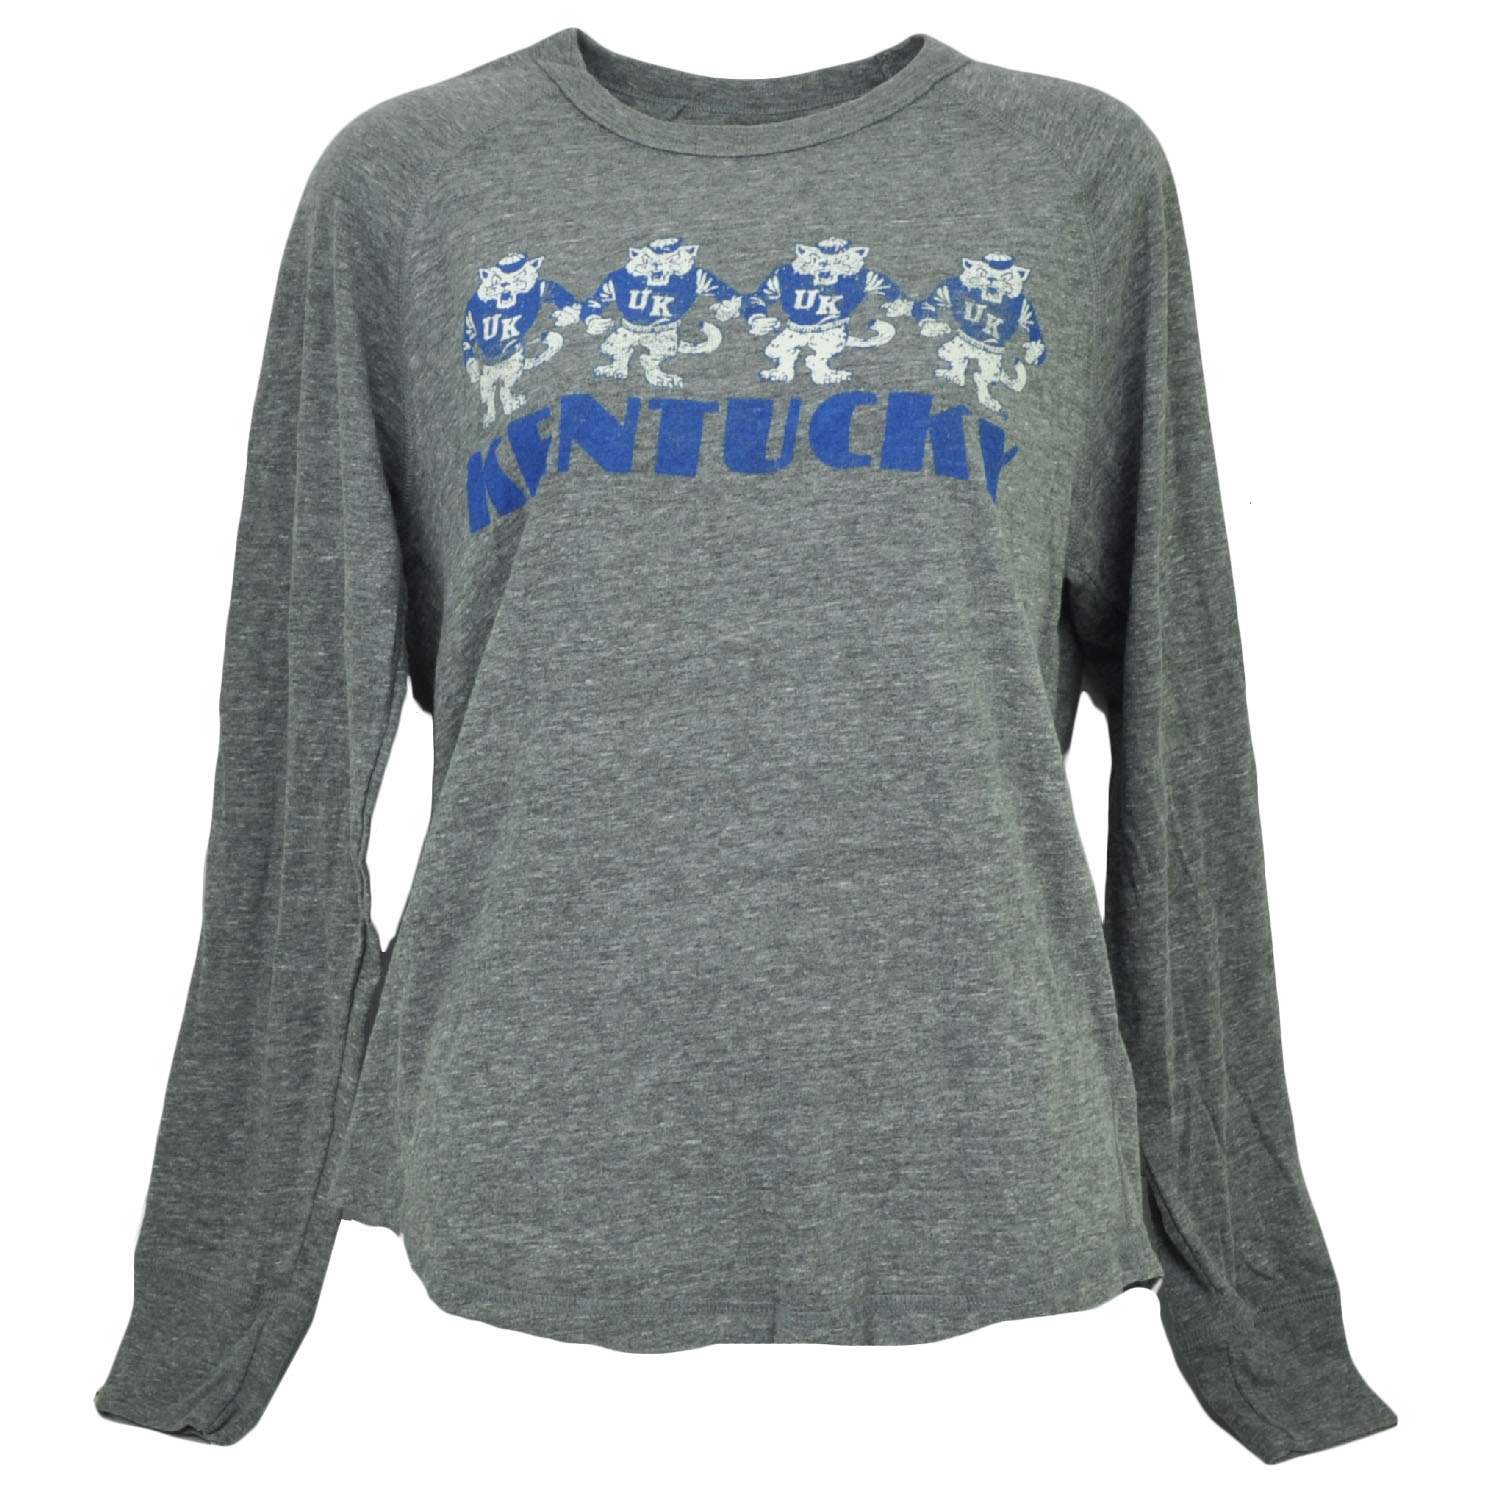 NCAA Kentucky Wildcats Long Sleeve Tshirt Tee Womens Ladies Loose Fit Gray XLarg